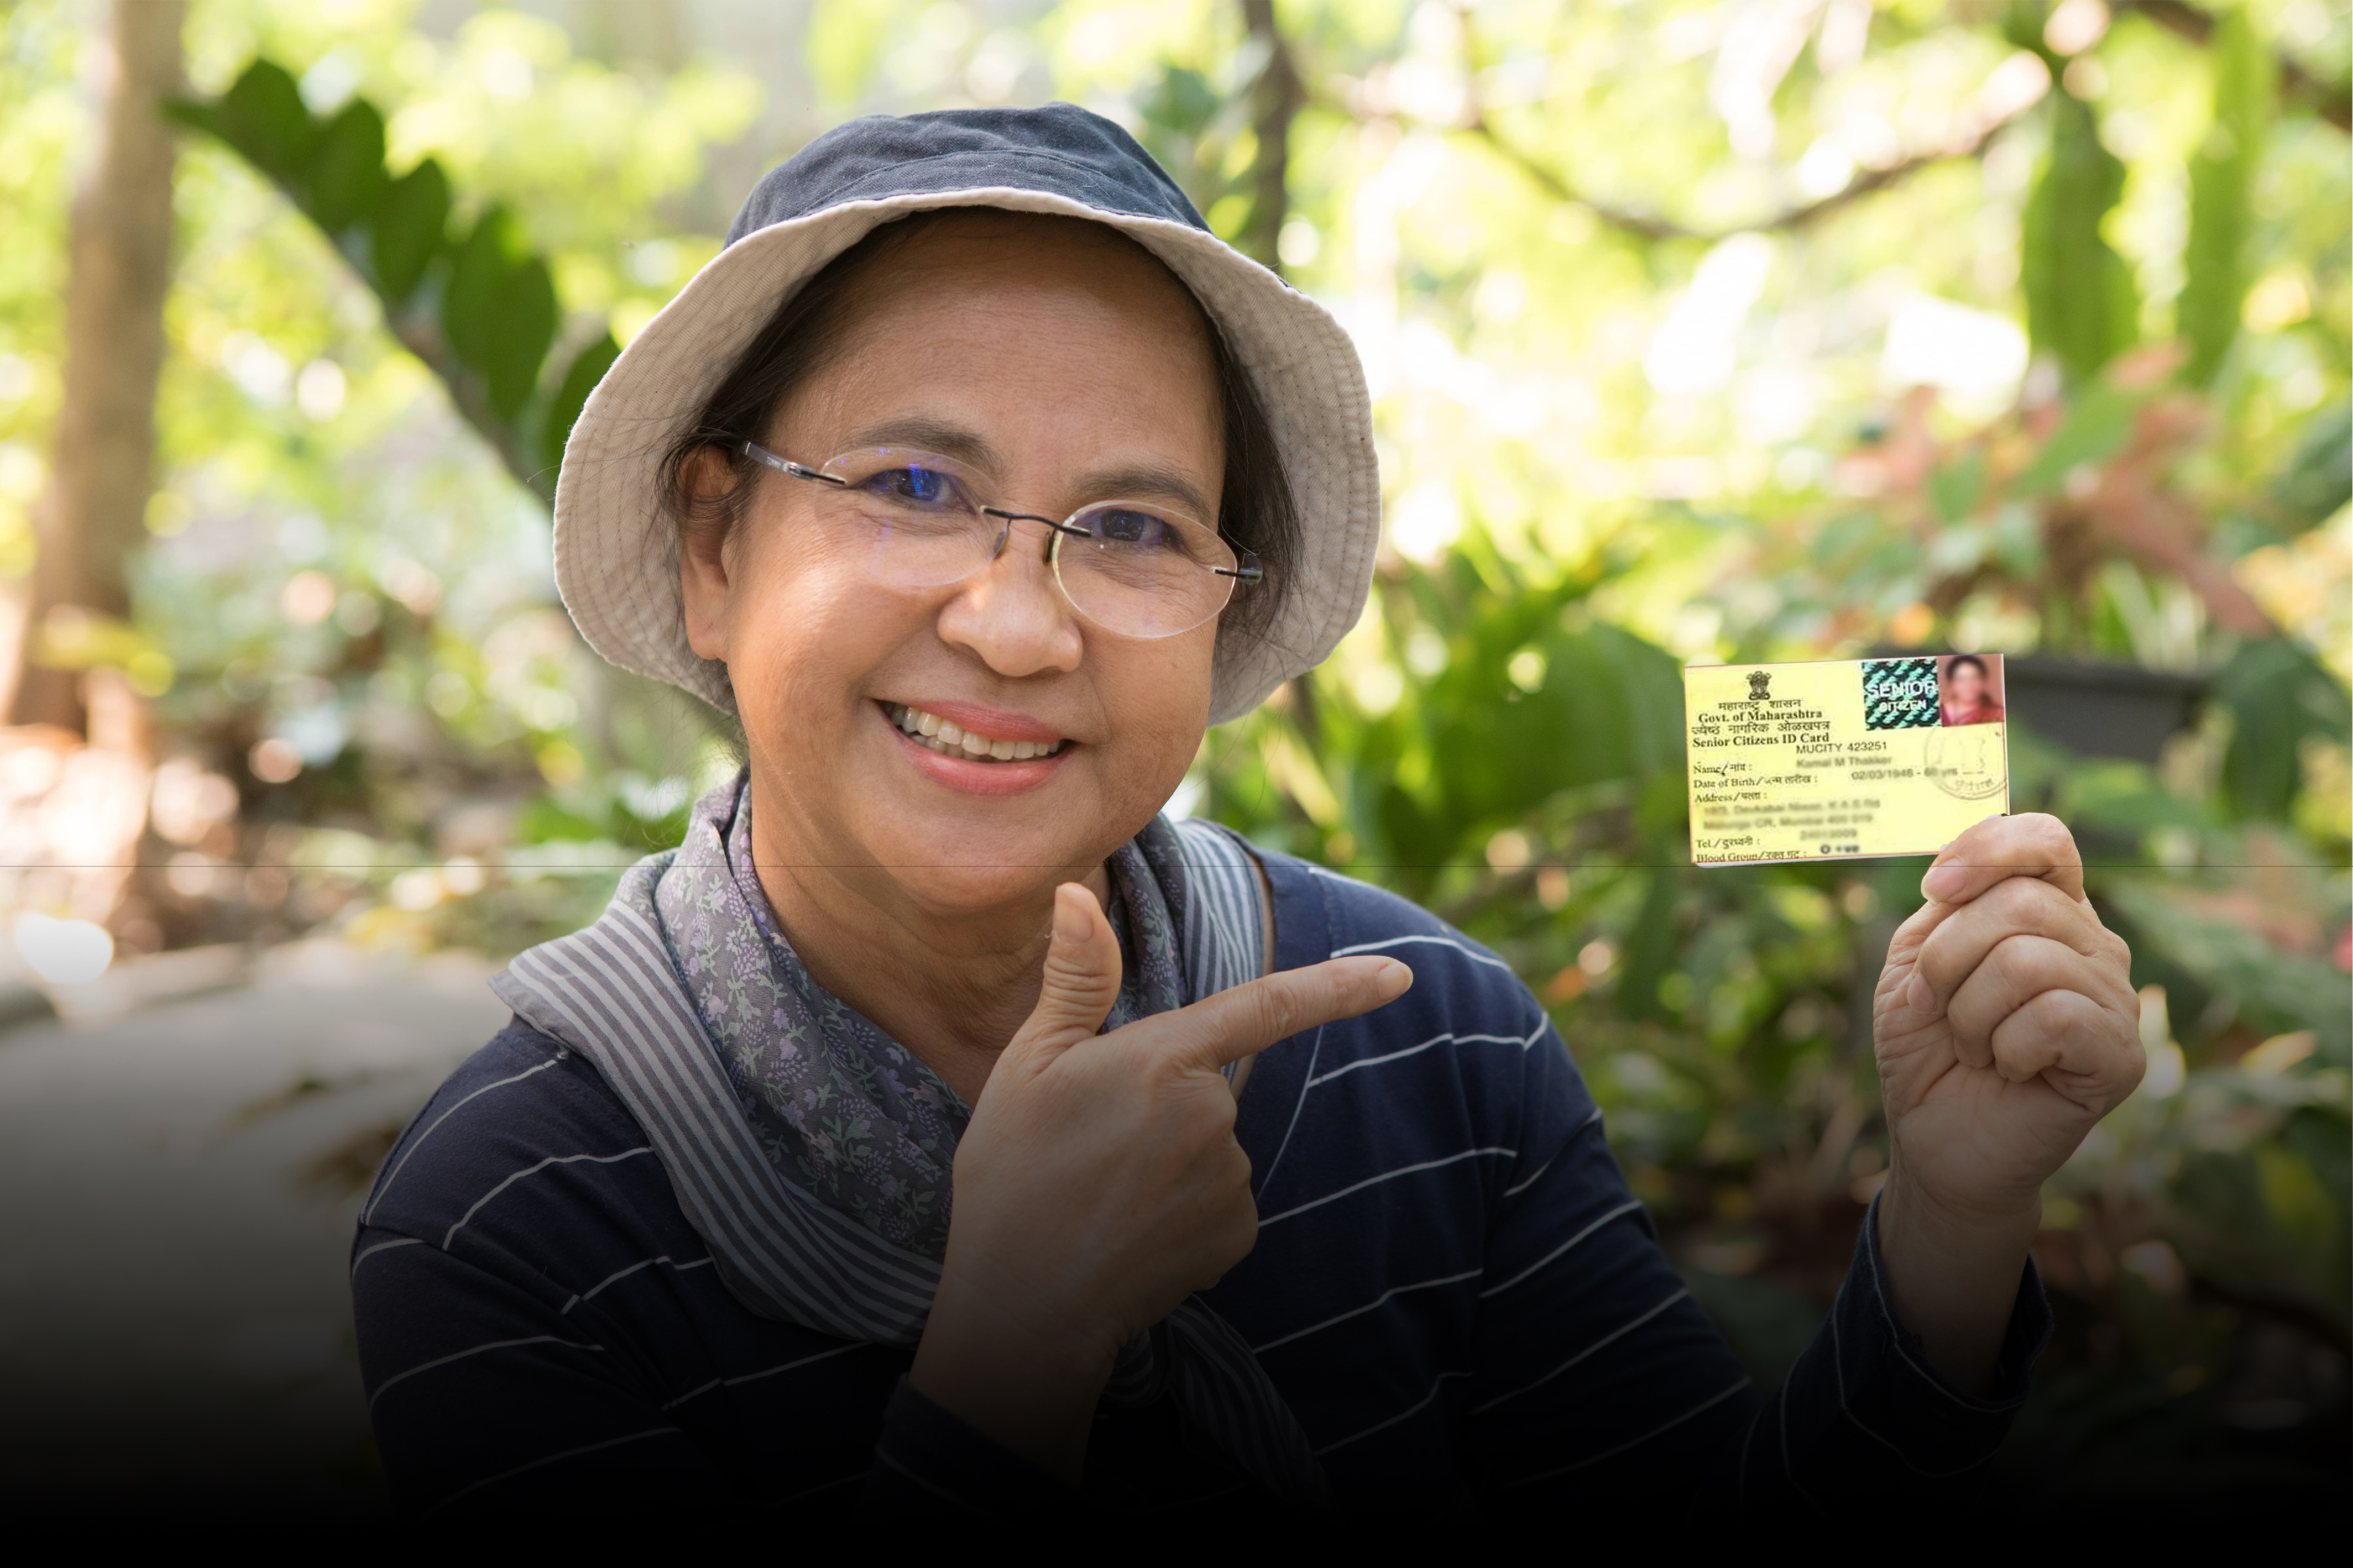 8 Benefits of the Senior Citizen Card in India